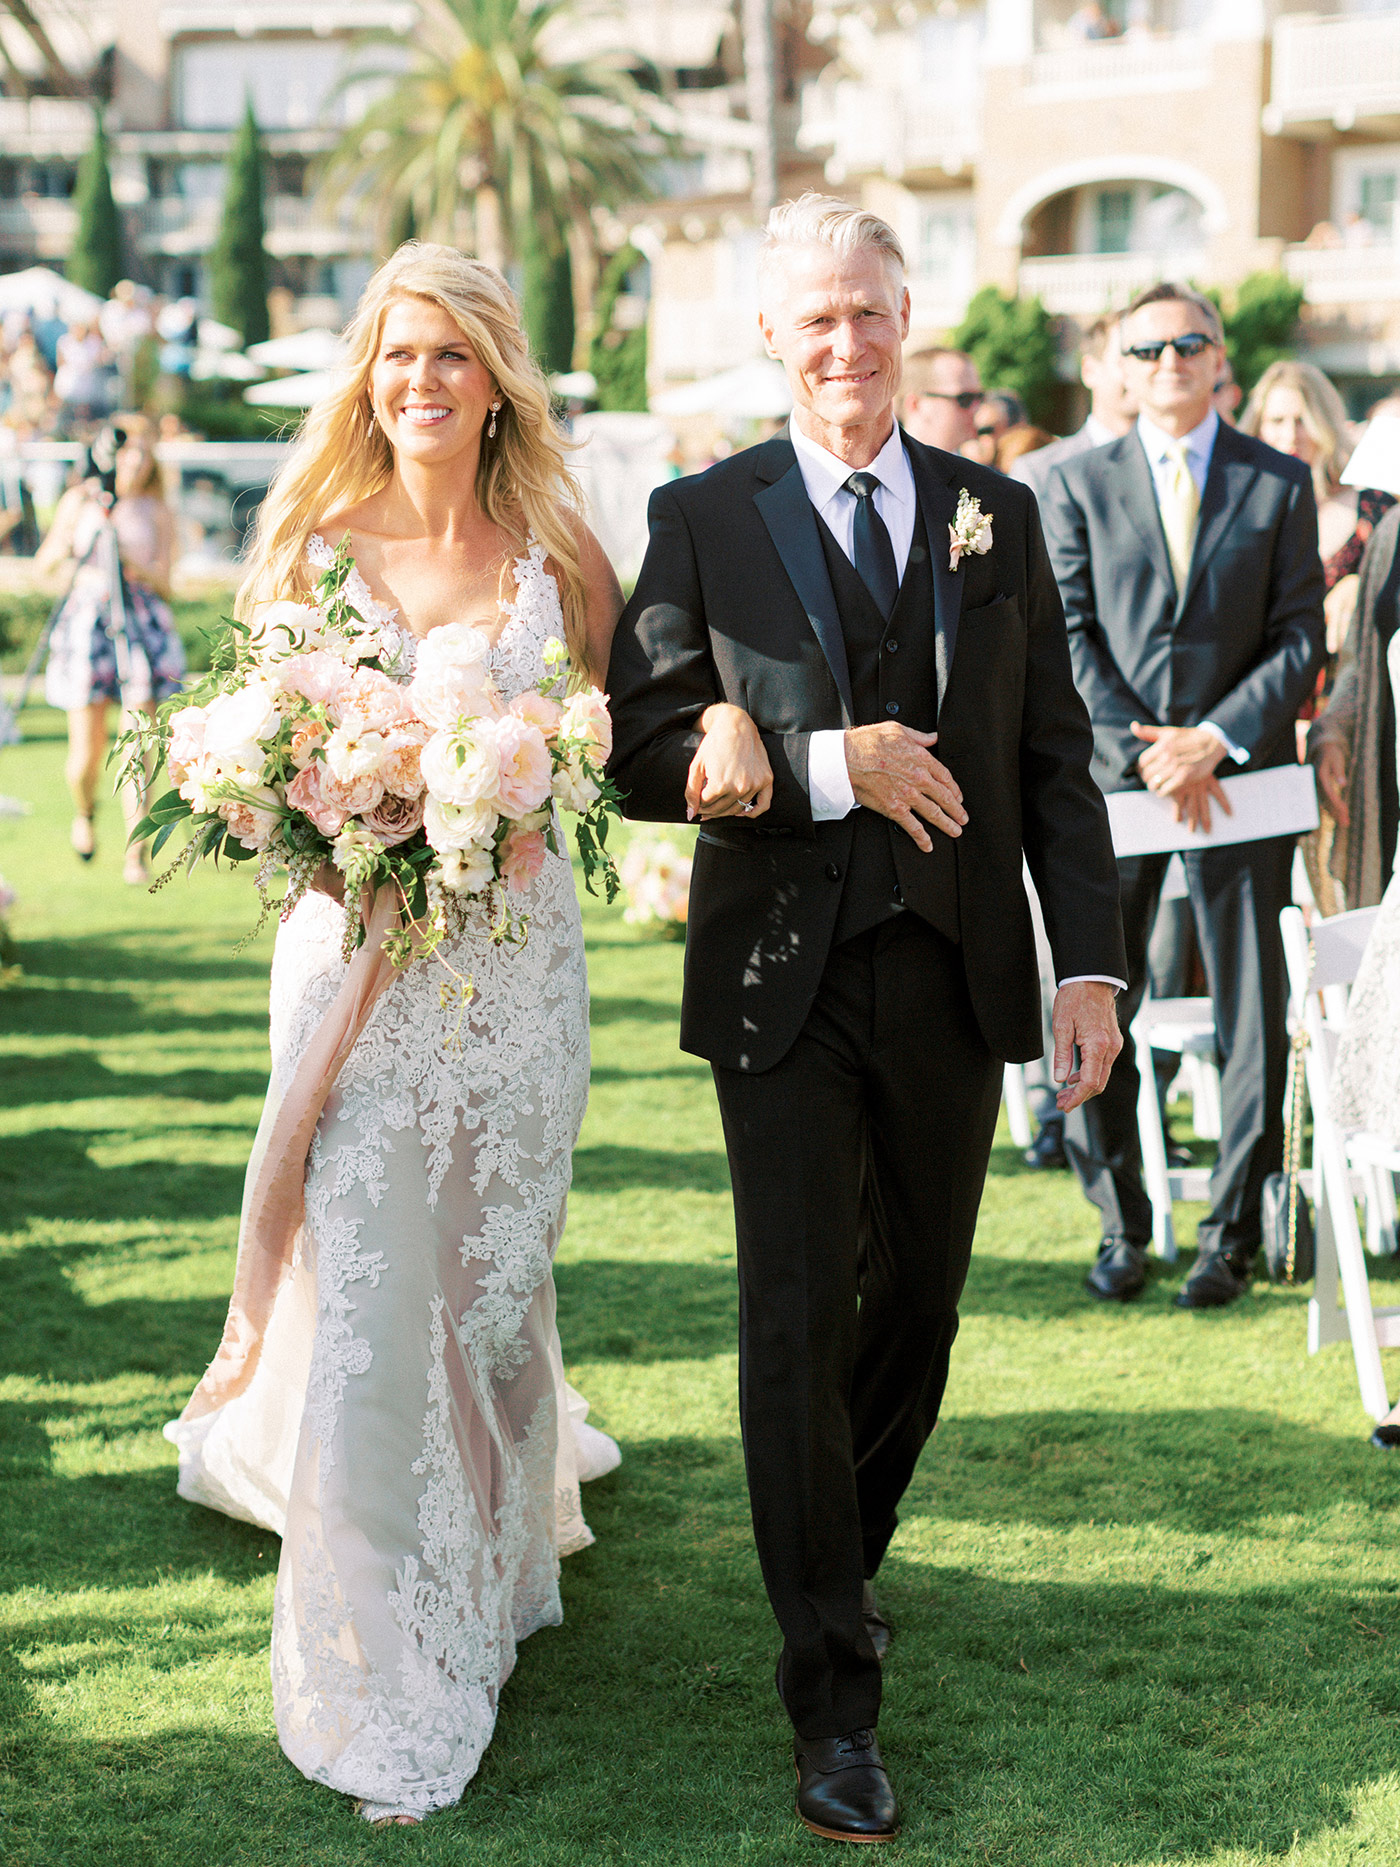 mykaela and brendon wedding bride walking down aisle with father